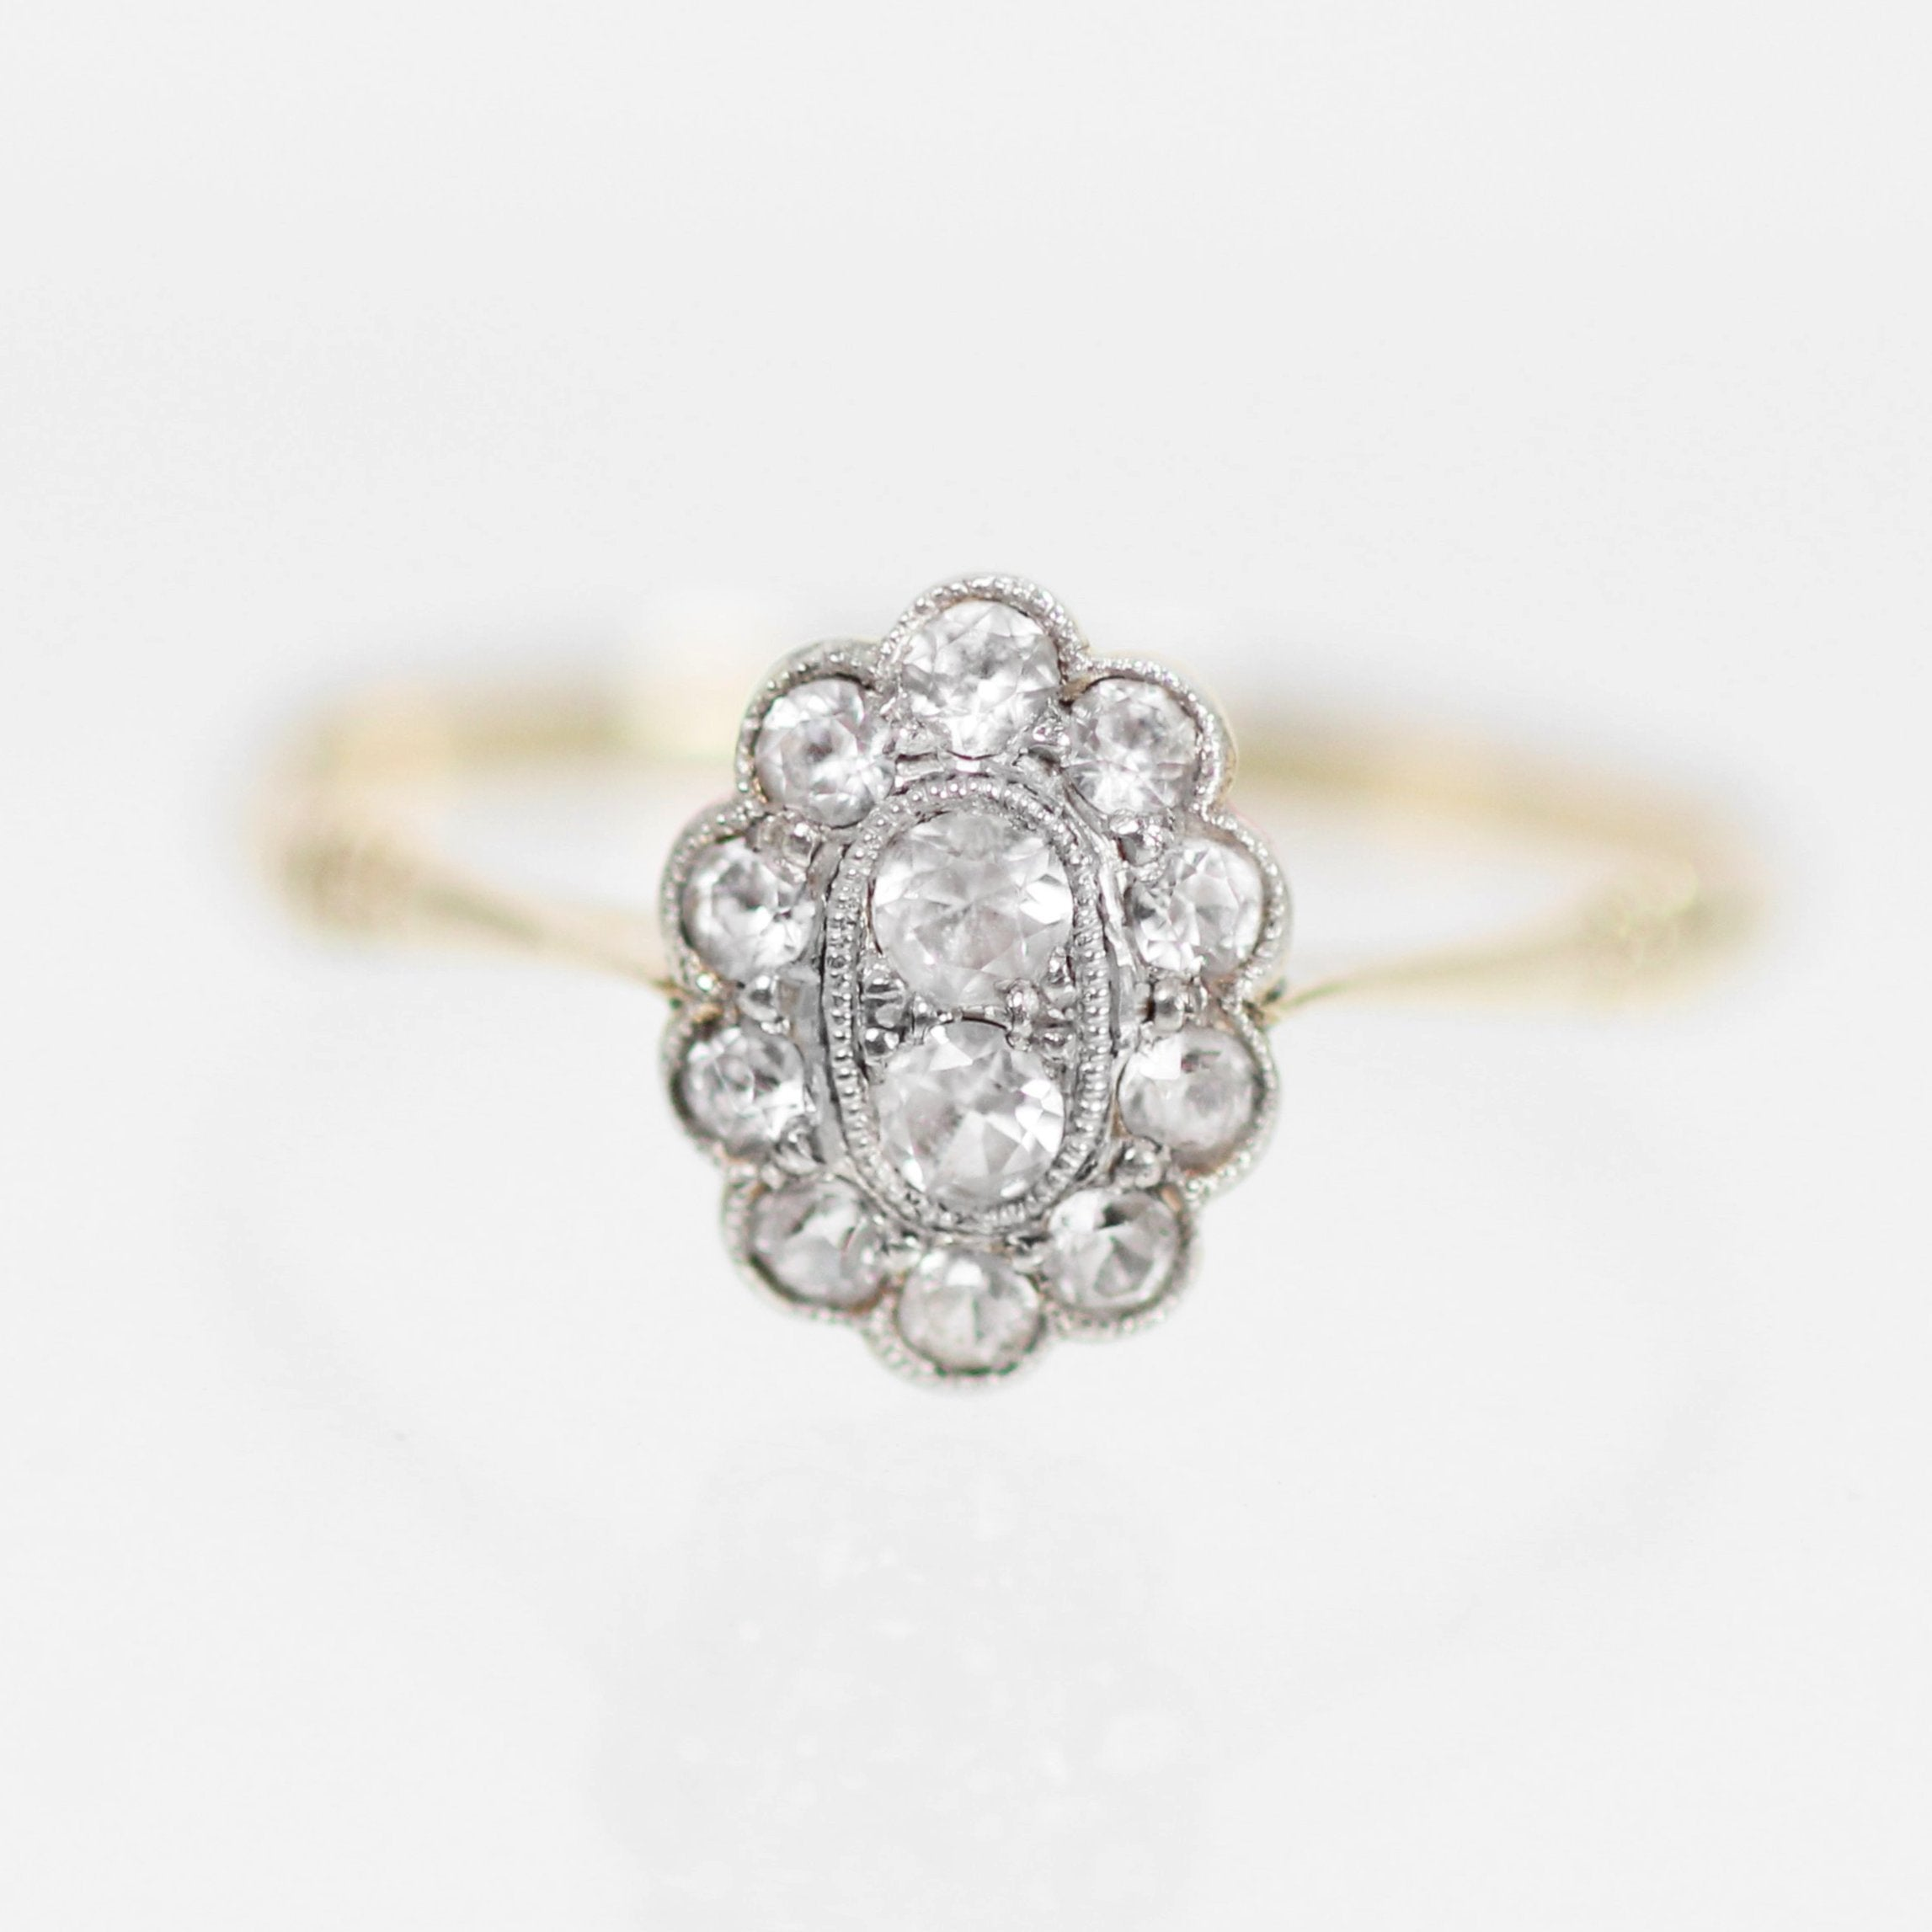 Antique 9k Yellow Gold + Platinum White Sapphire Ring